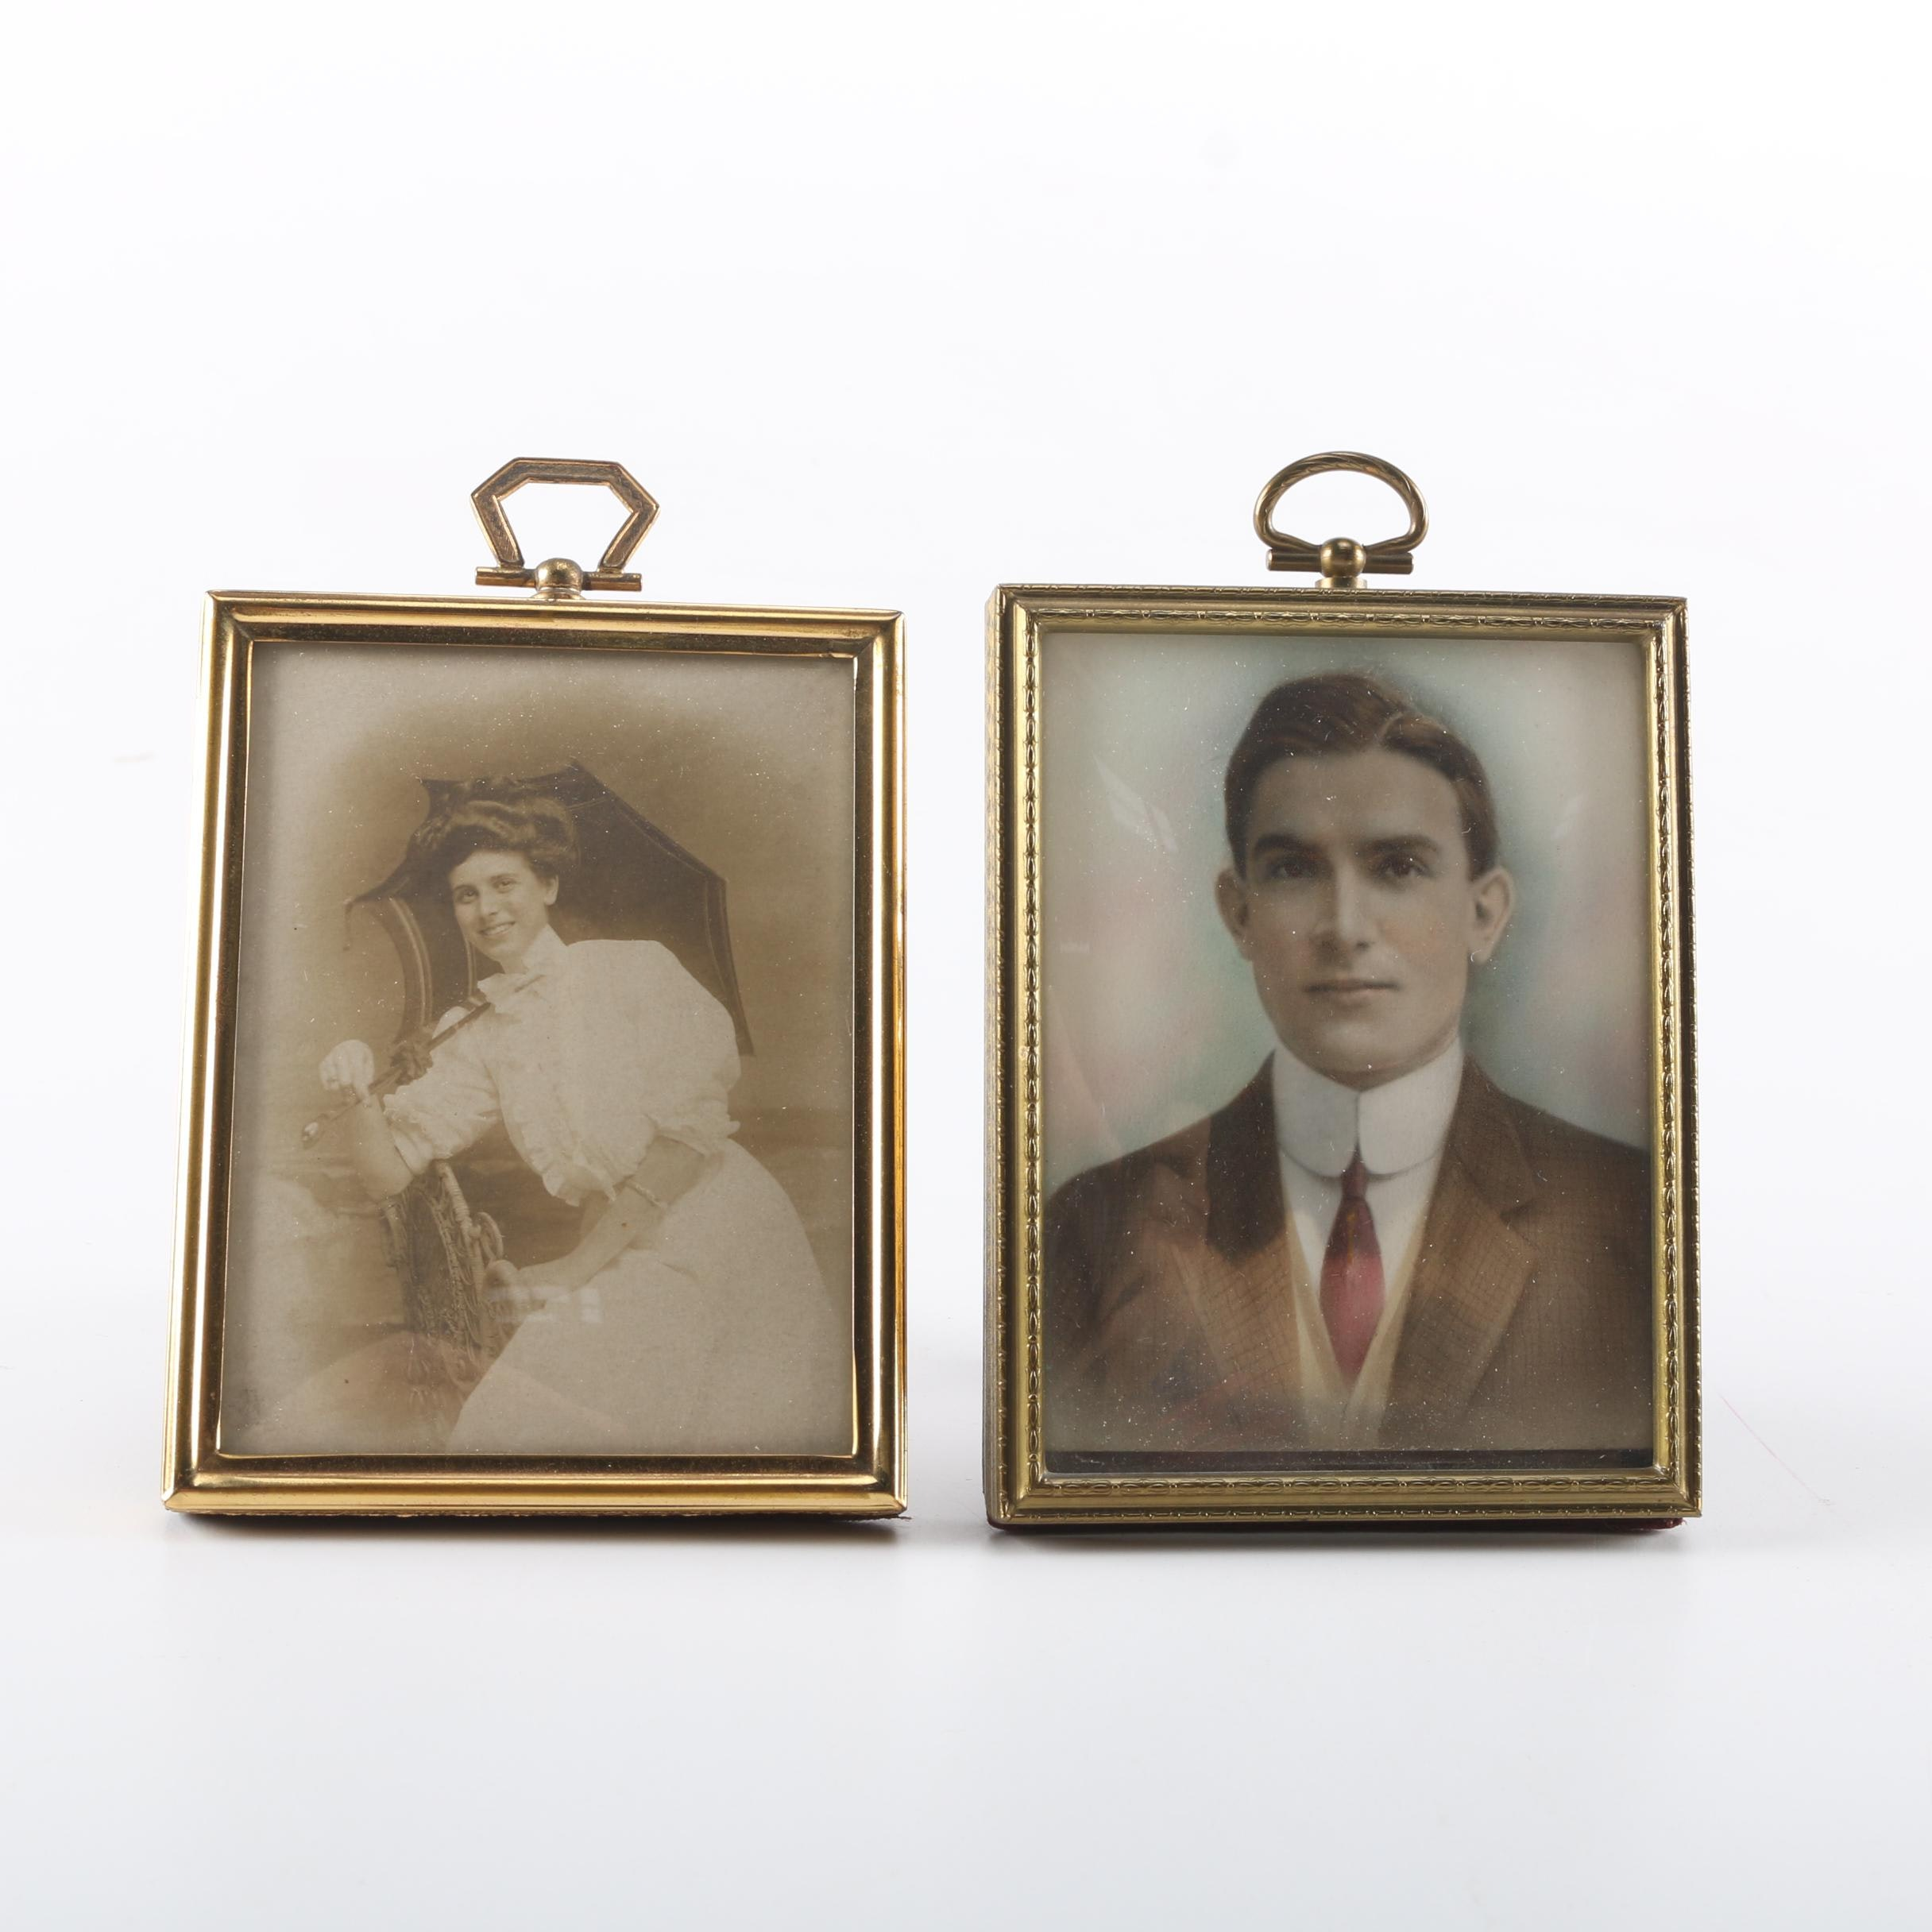 Brass Picture Frames With Photographs